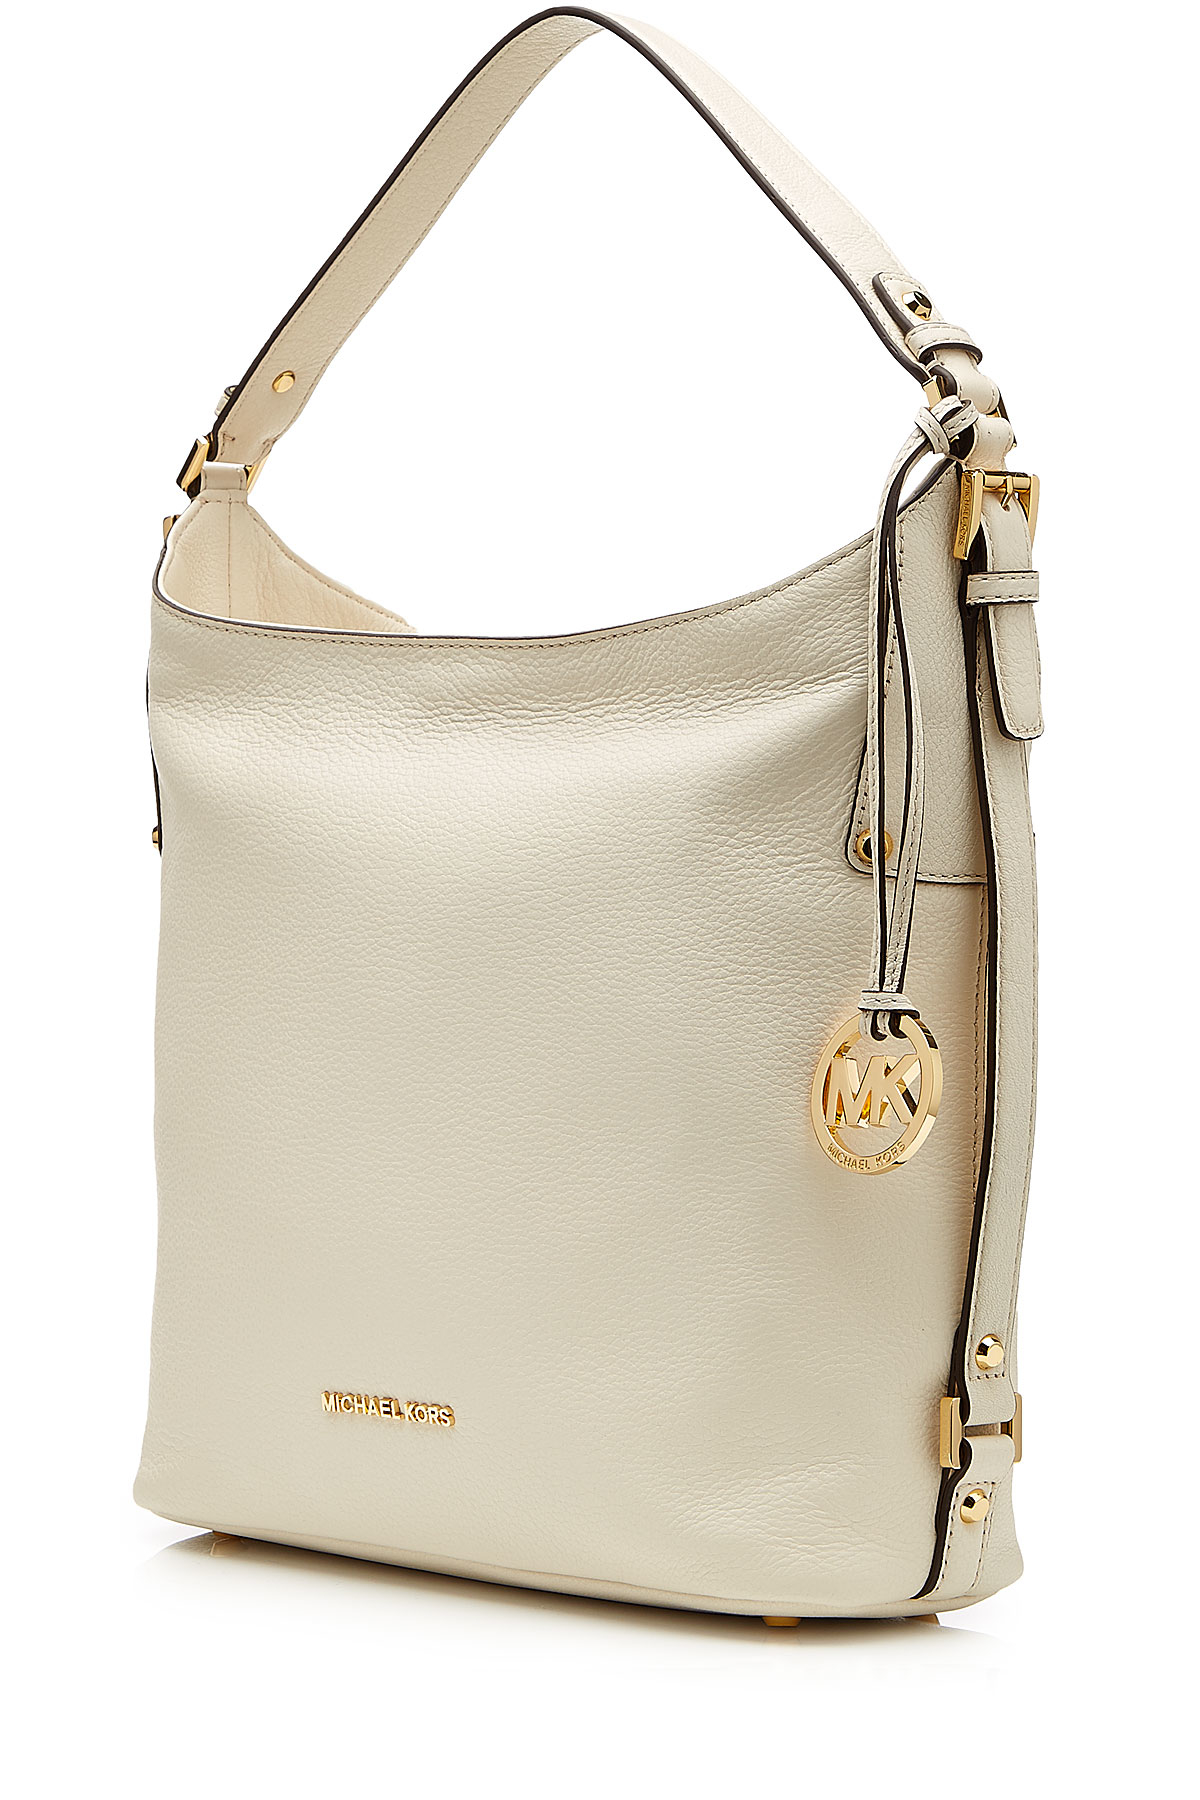 0dad25a55702 ... free shipping lyst michael michael kors bedford large leather shoulder  bag white in natural ee3ec a298f